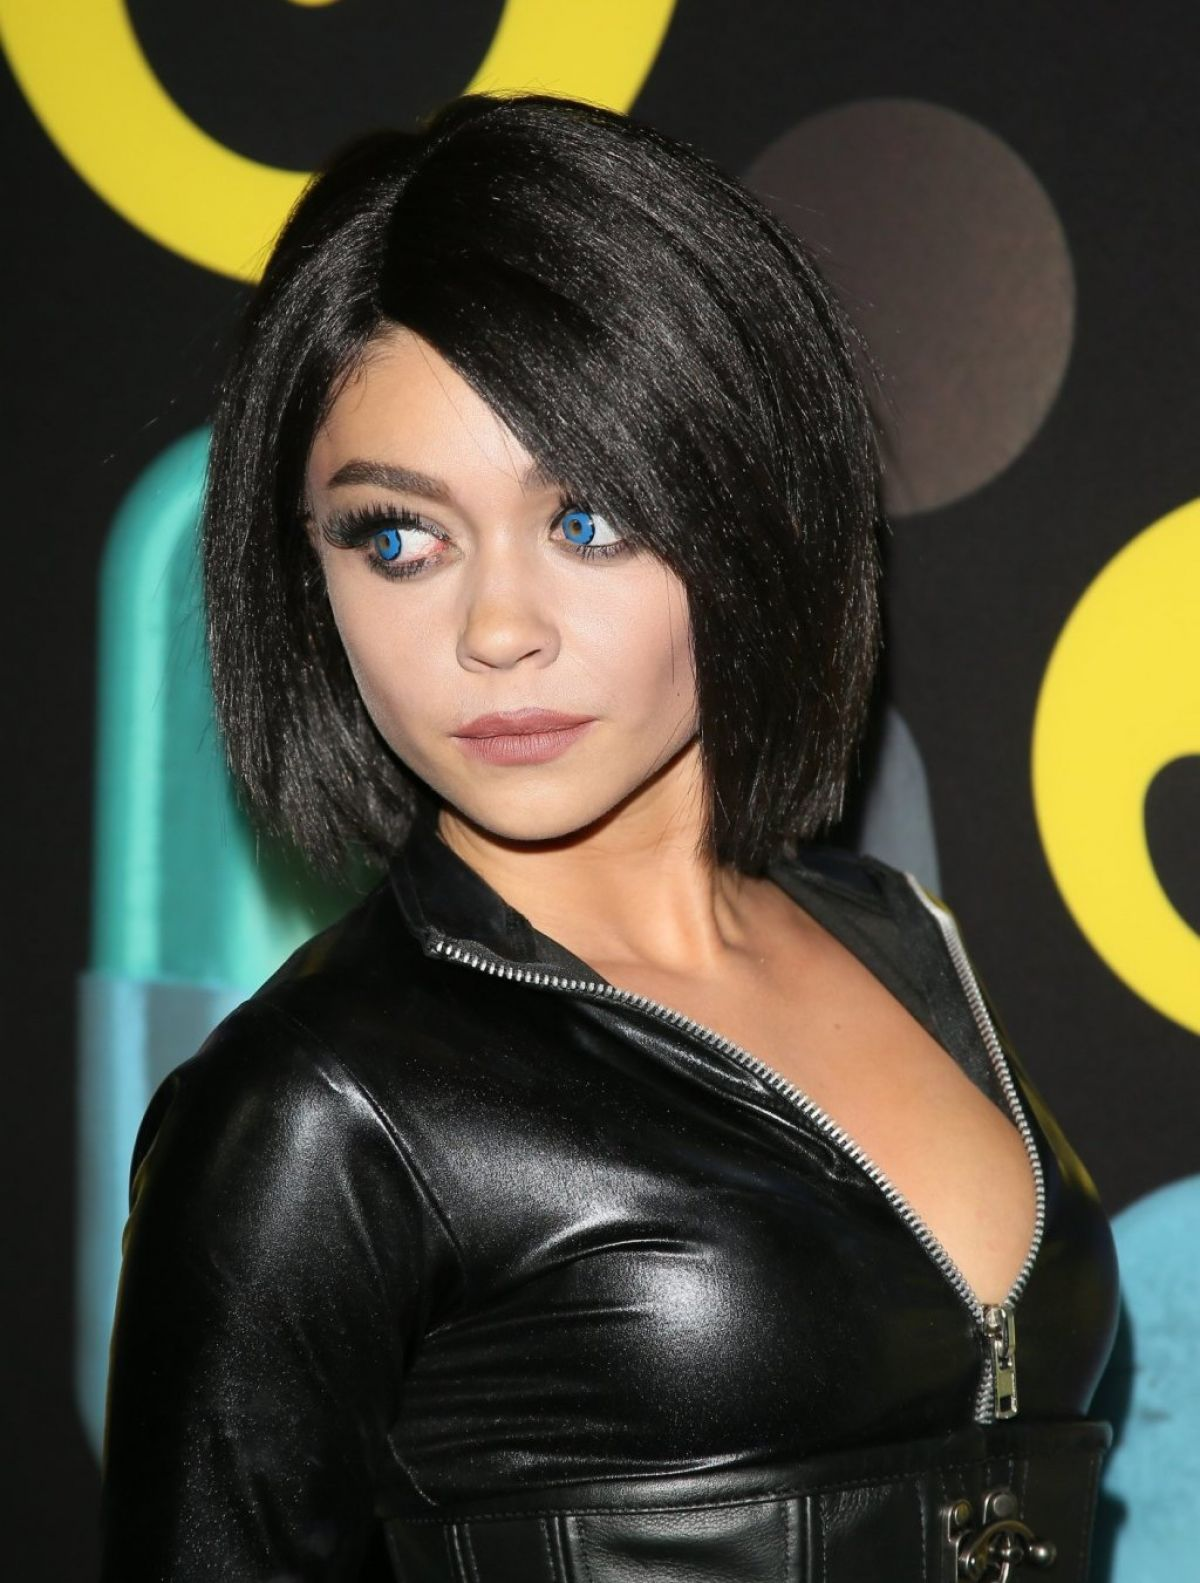 sarah hyland at just jared halloween party in hollywood 10312015 - Halloween Parties In Hollywood